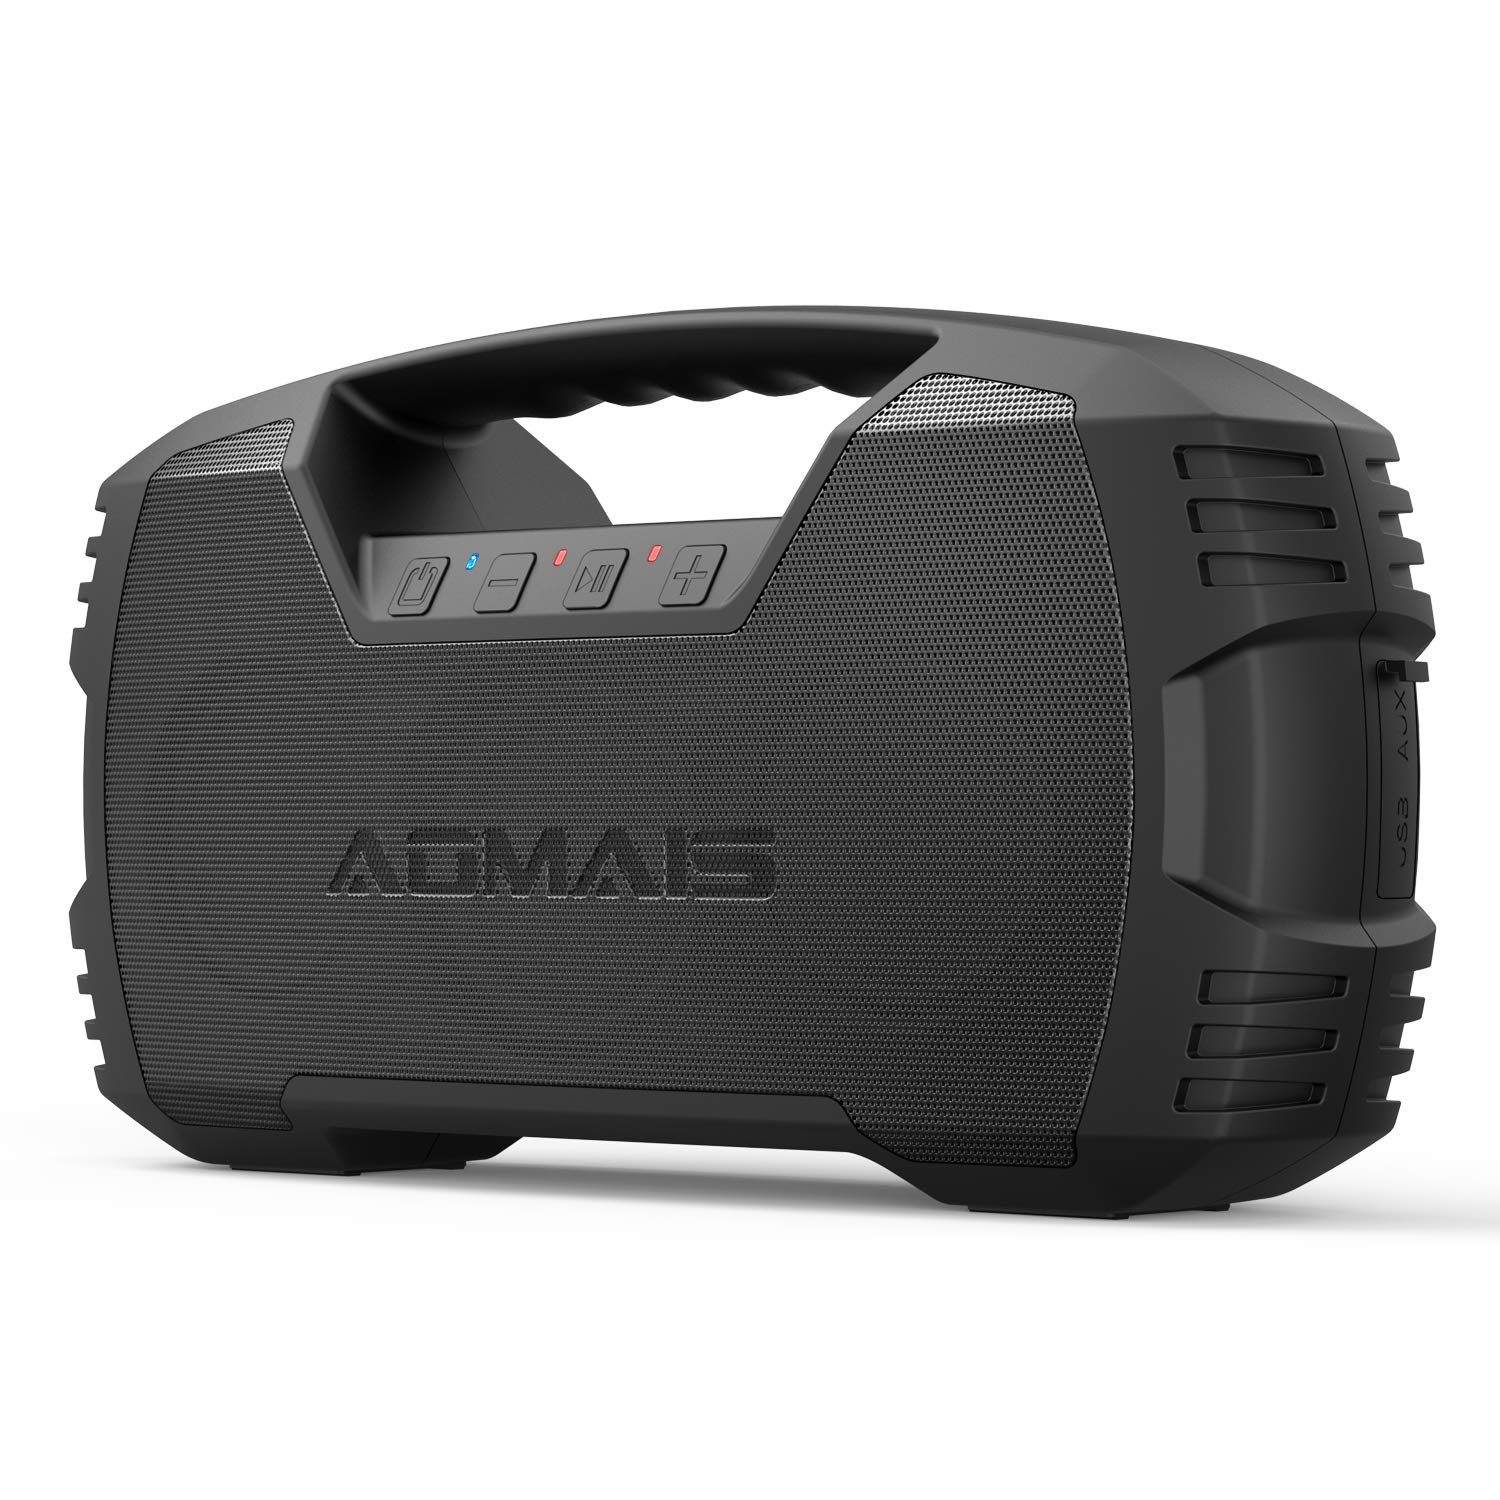 aomais-go-bluetooth-speakers-40h-playtime-outdoor-portable-speaker-40w-stereo-sound-rich-bass-ipx7-waterproof-bluetooth-50-wireless-pairing10000mah-power-bank-for-party-travel-2020-up